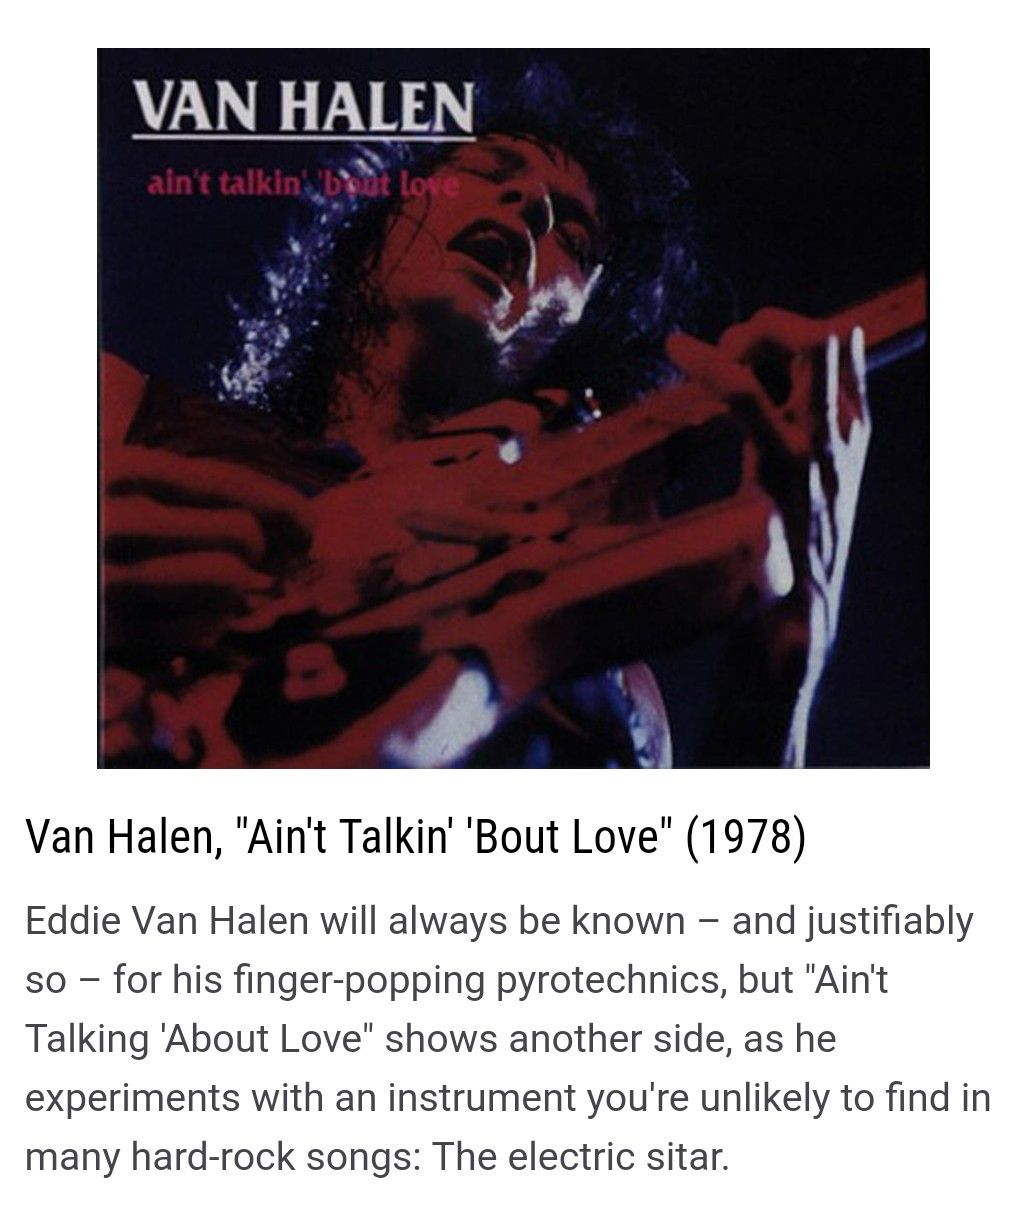 Pin By Elaine H On Van Halen Albums Hard Rock Songs How To Show Love Rock Songs